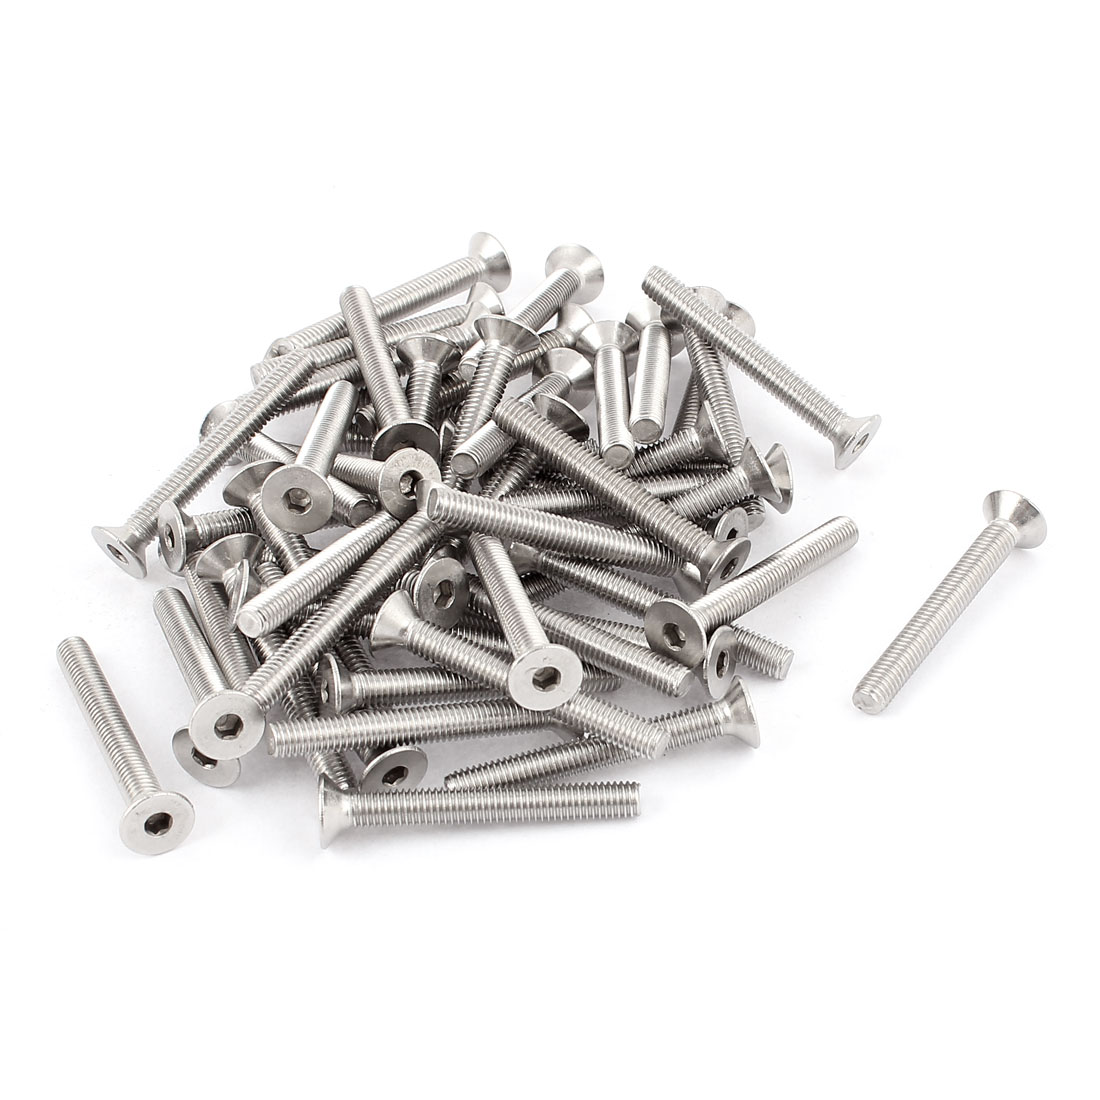 M5x40mm Stainless Steel Hex Socket Flat Head Countersunk Bolts Screw 50Pcs